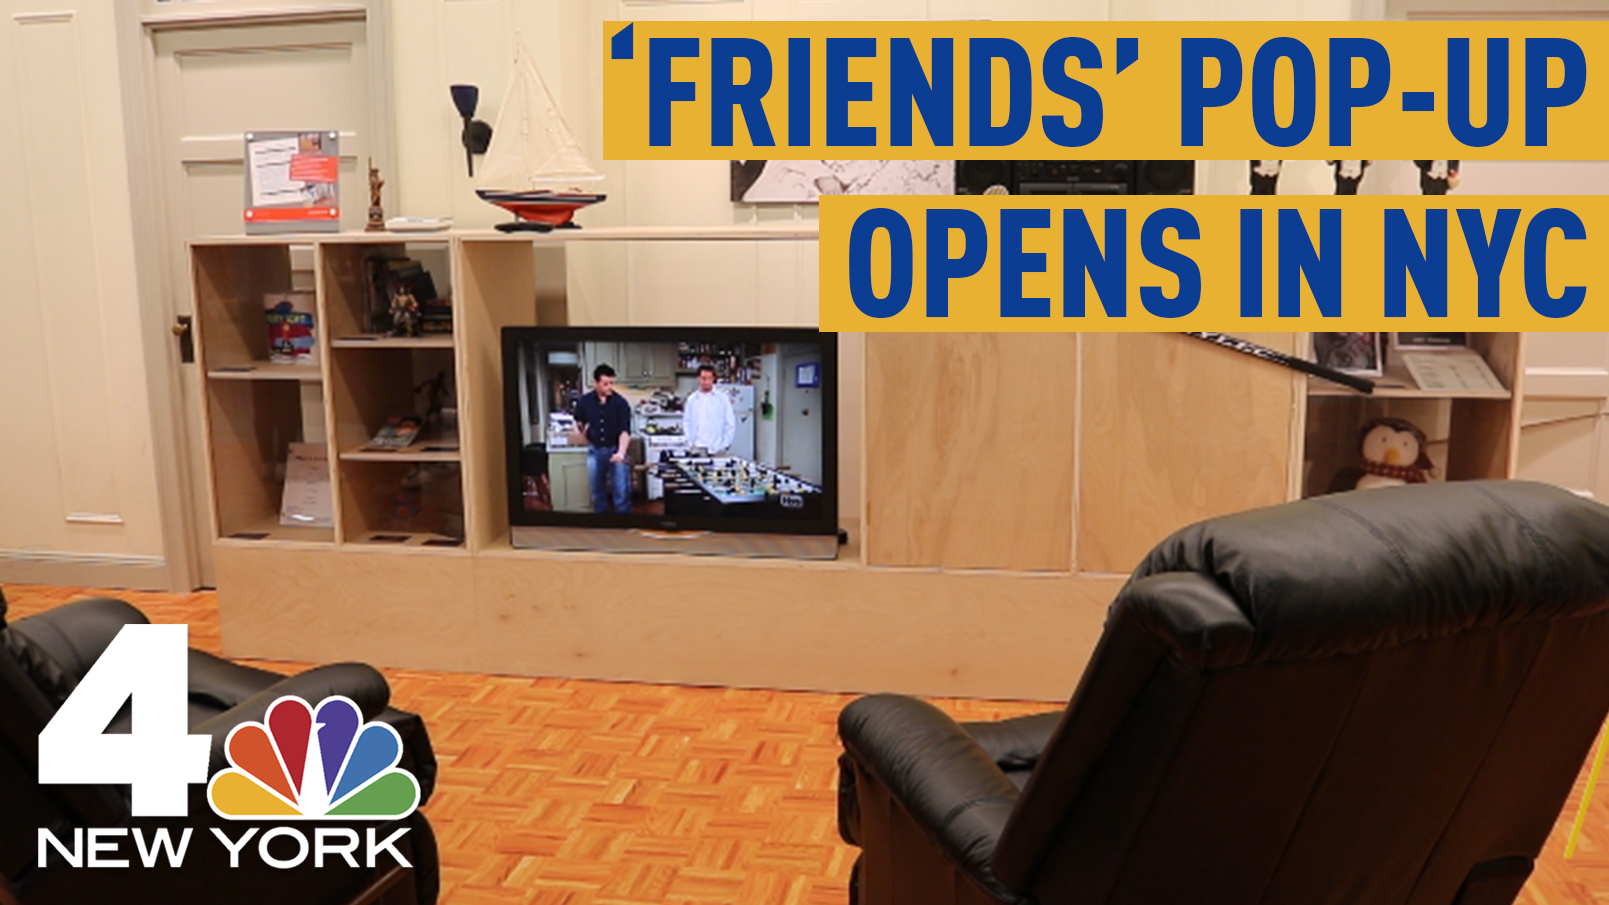 Inside the 'Friends' NYC Pop-Up